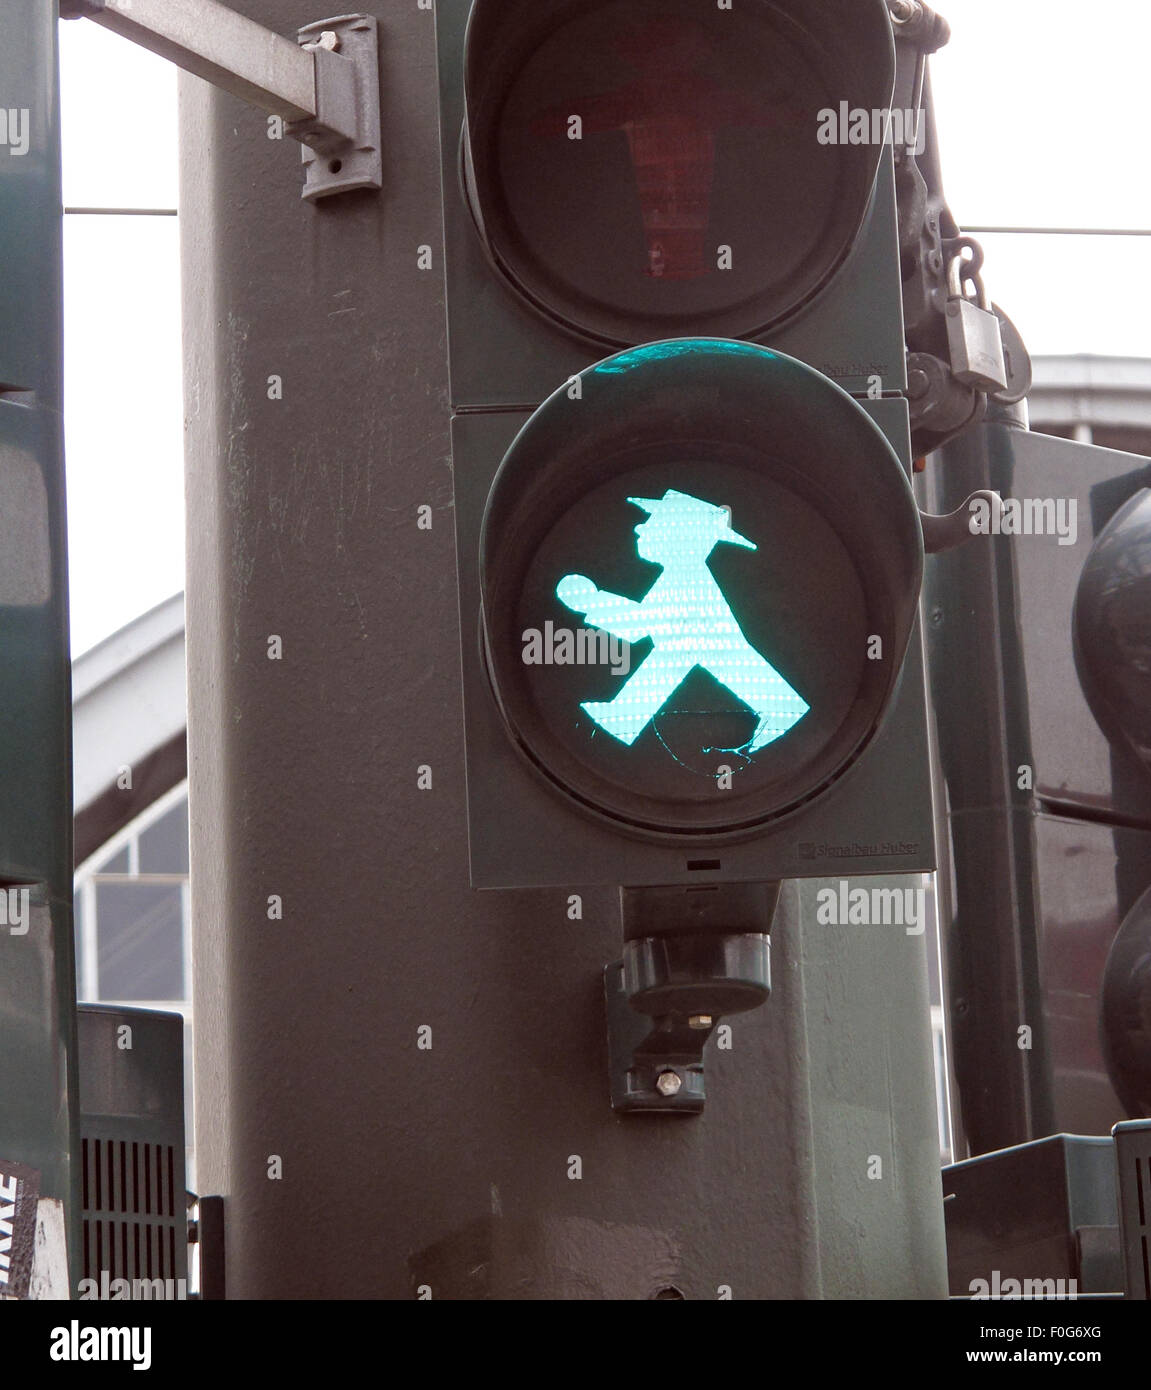 ampelmann,ampelmannchen,berlin,blue,city,cloud,color,control,crossing,crossroads,ddr,deutschland,east,europe,european,famous,figure,funny,gdr,german,germany,go,green,illuminated,intersection,lamp,light,man,manikin,mass,original,pedestrian,post,public,green,road,GoTonySmith,classic,unique,Euro,roads,sign,sky,street,traffic,transit,transport,transportation,travel,trip,urban,walker,walking,Buy Pictures of,Buy Images Of